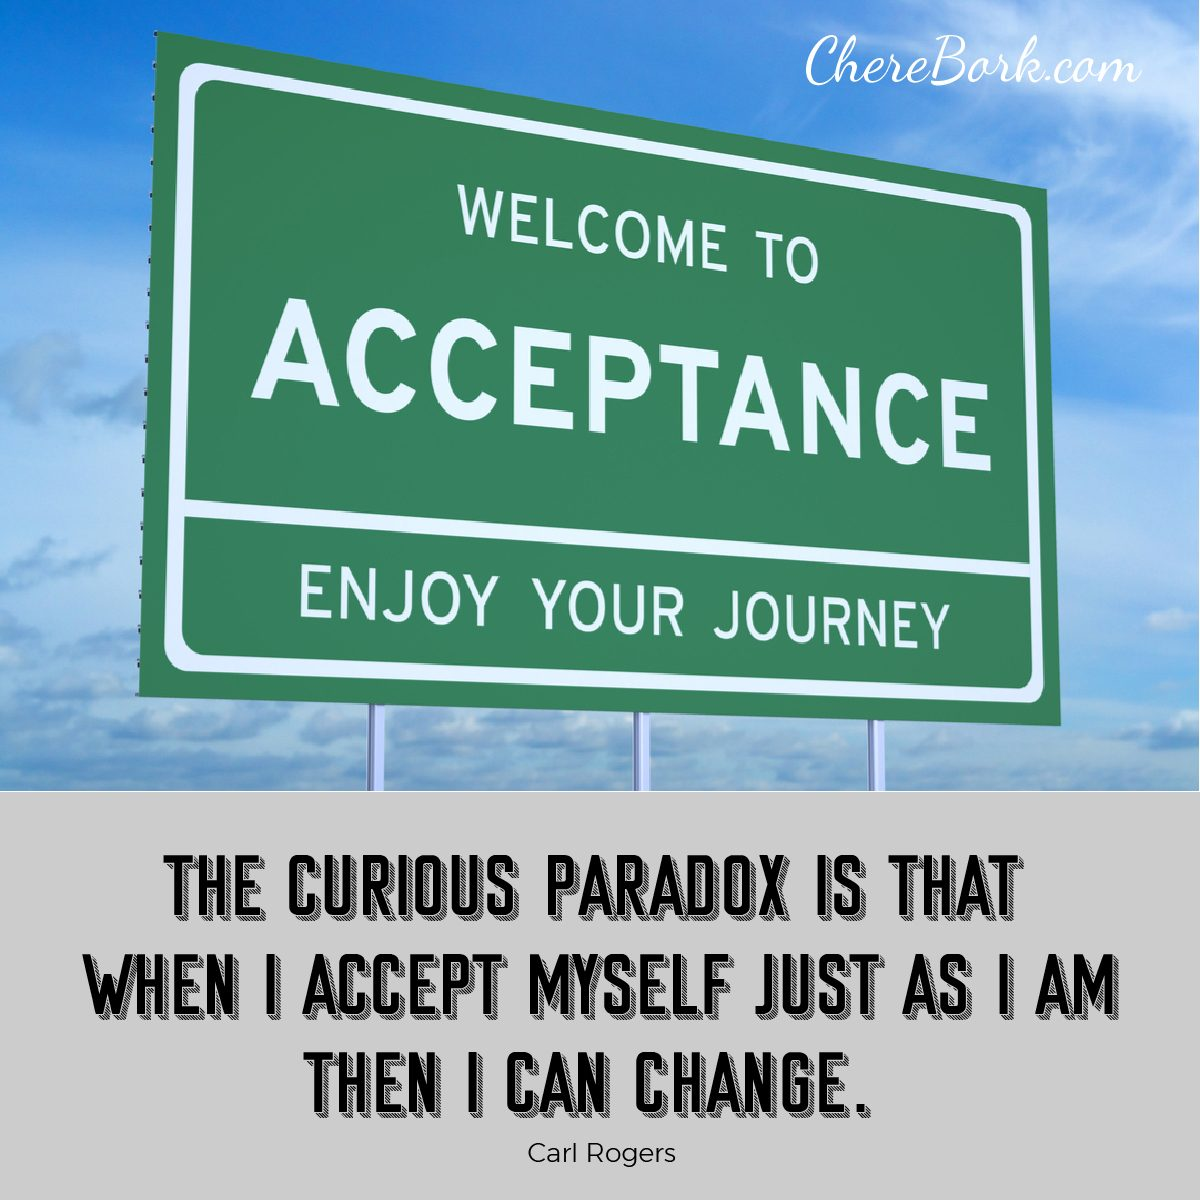 The curious paradox is that when I accept myself just as I am, then I can change. -Carl Rogers